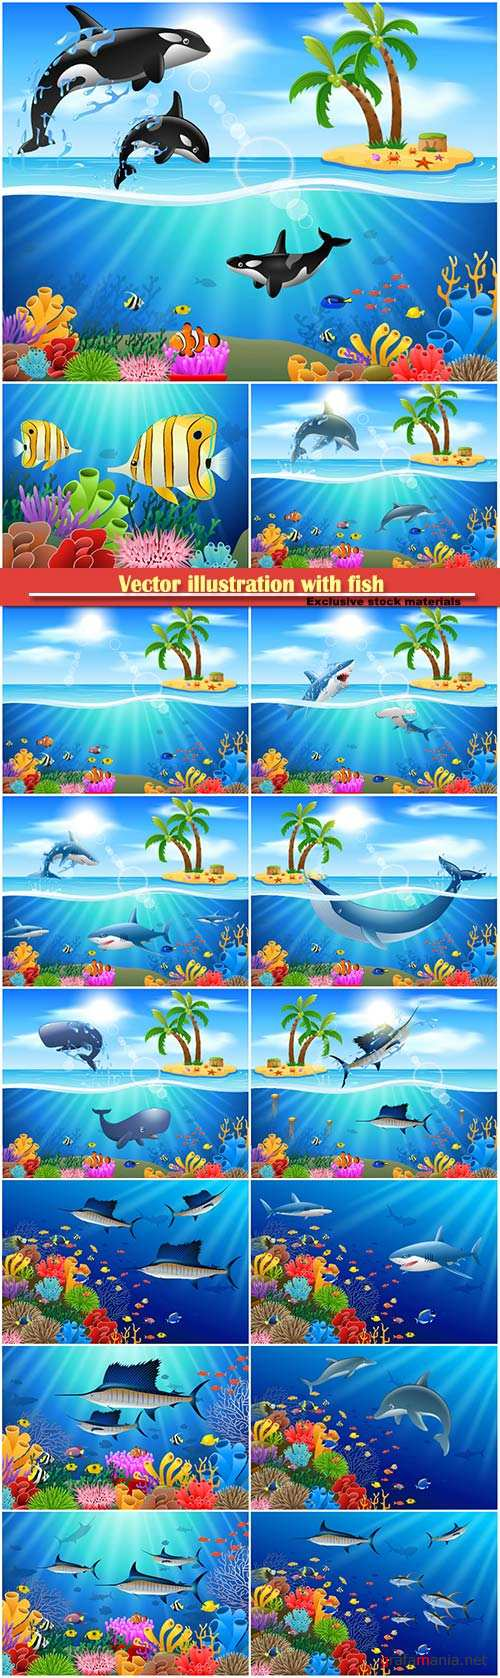 Underwater world, vector illustration with fish